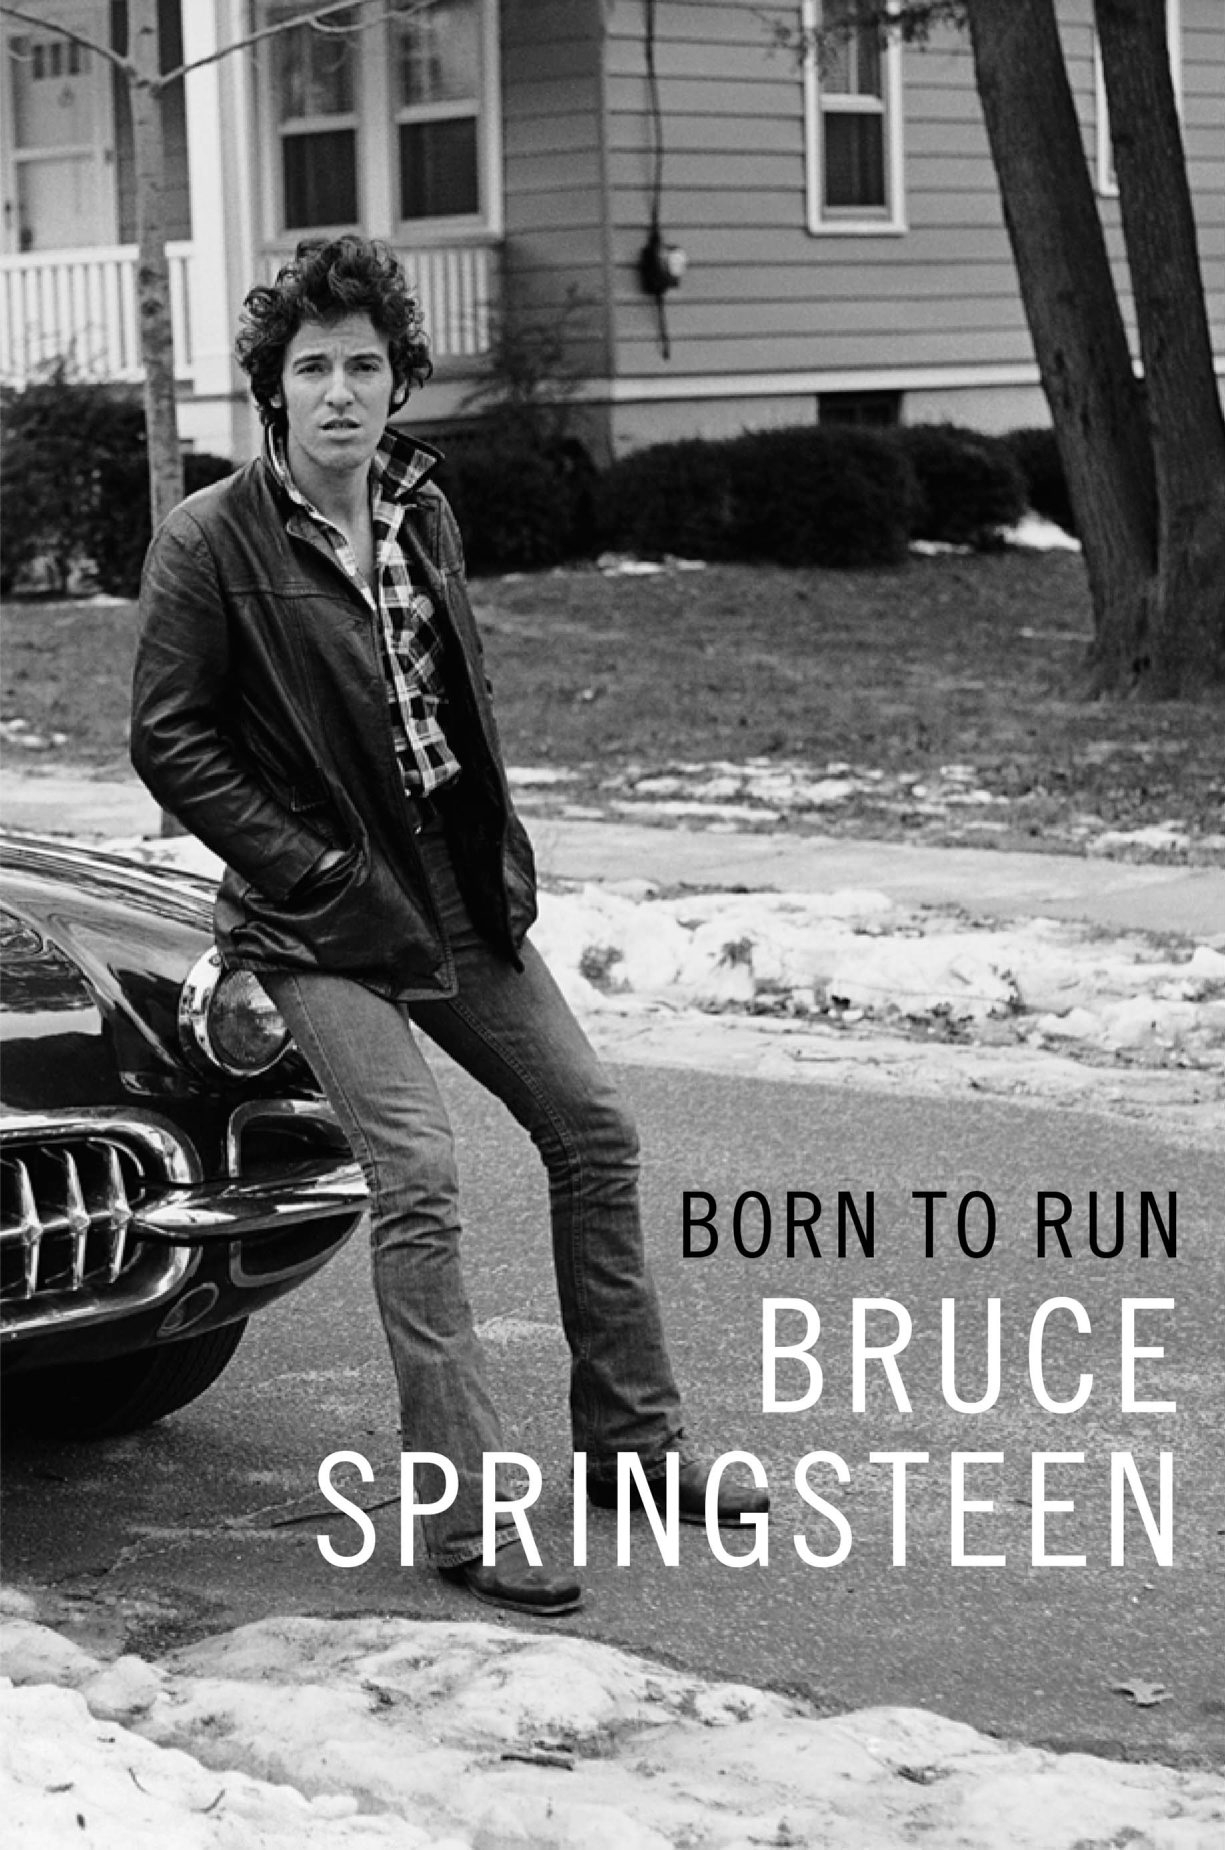 Bruce Springsteen's autobiography, 'Born to Run,' will be published in September.